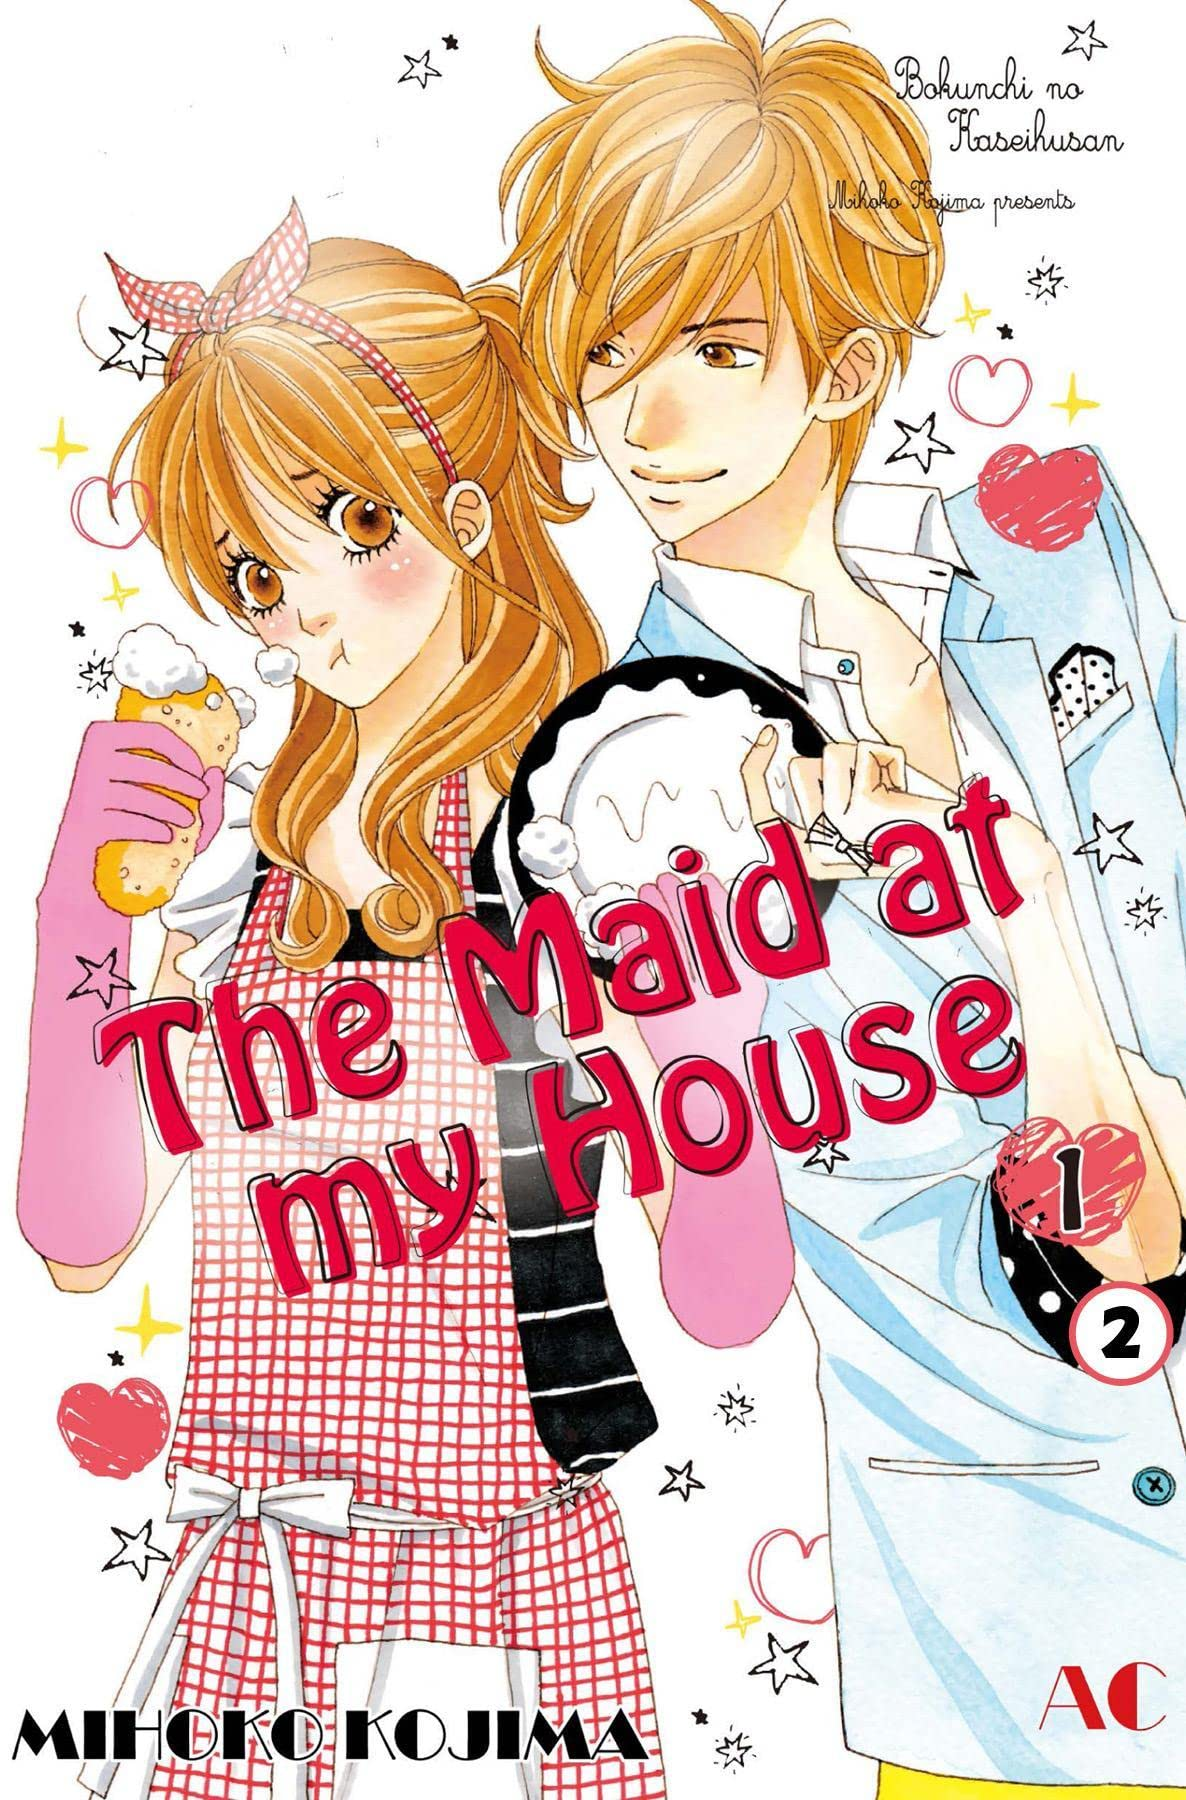 The Maid at my House #2